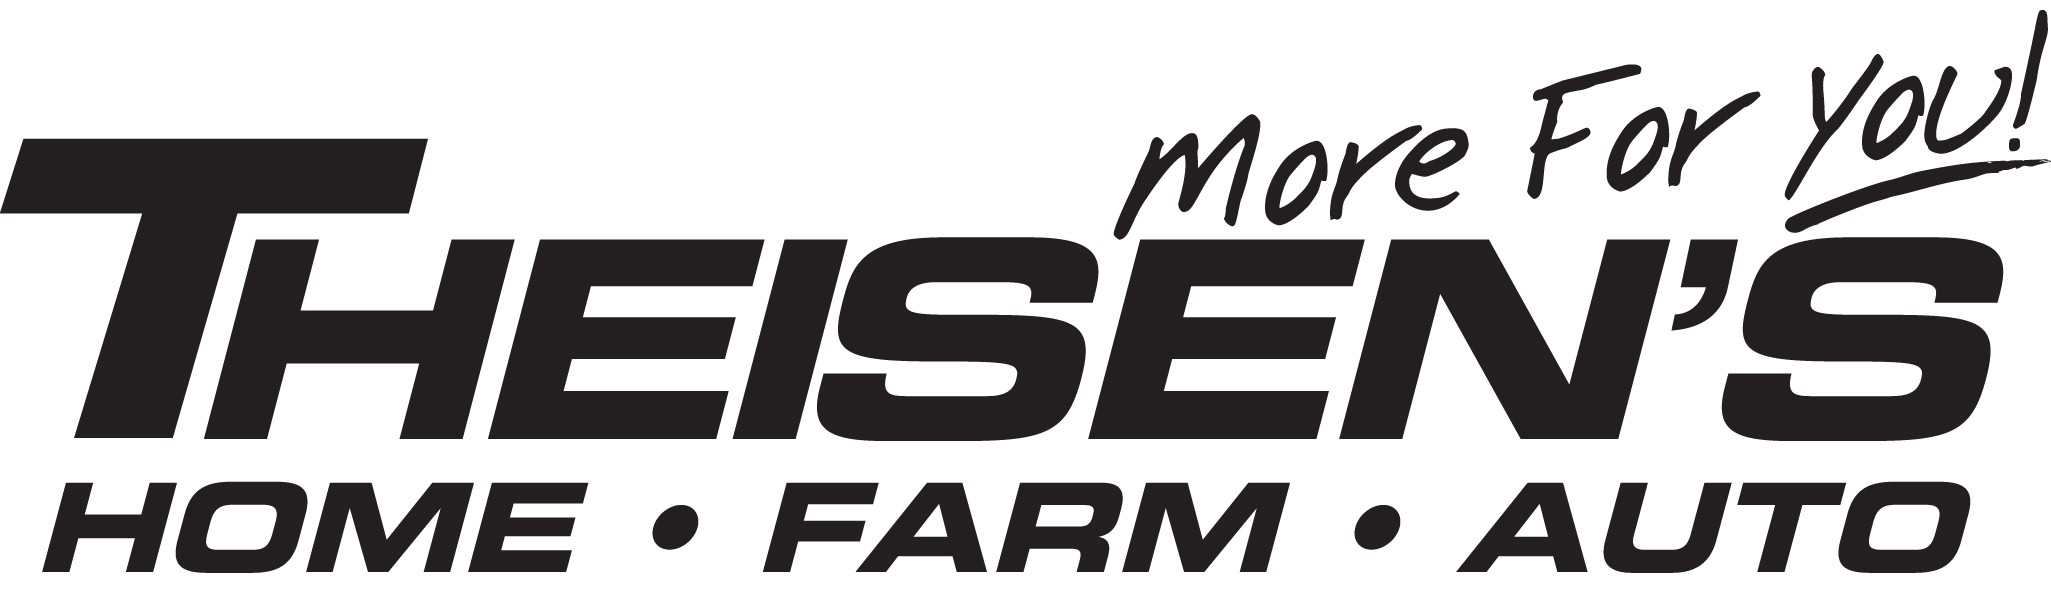 Theisen Home Farm Auto